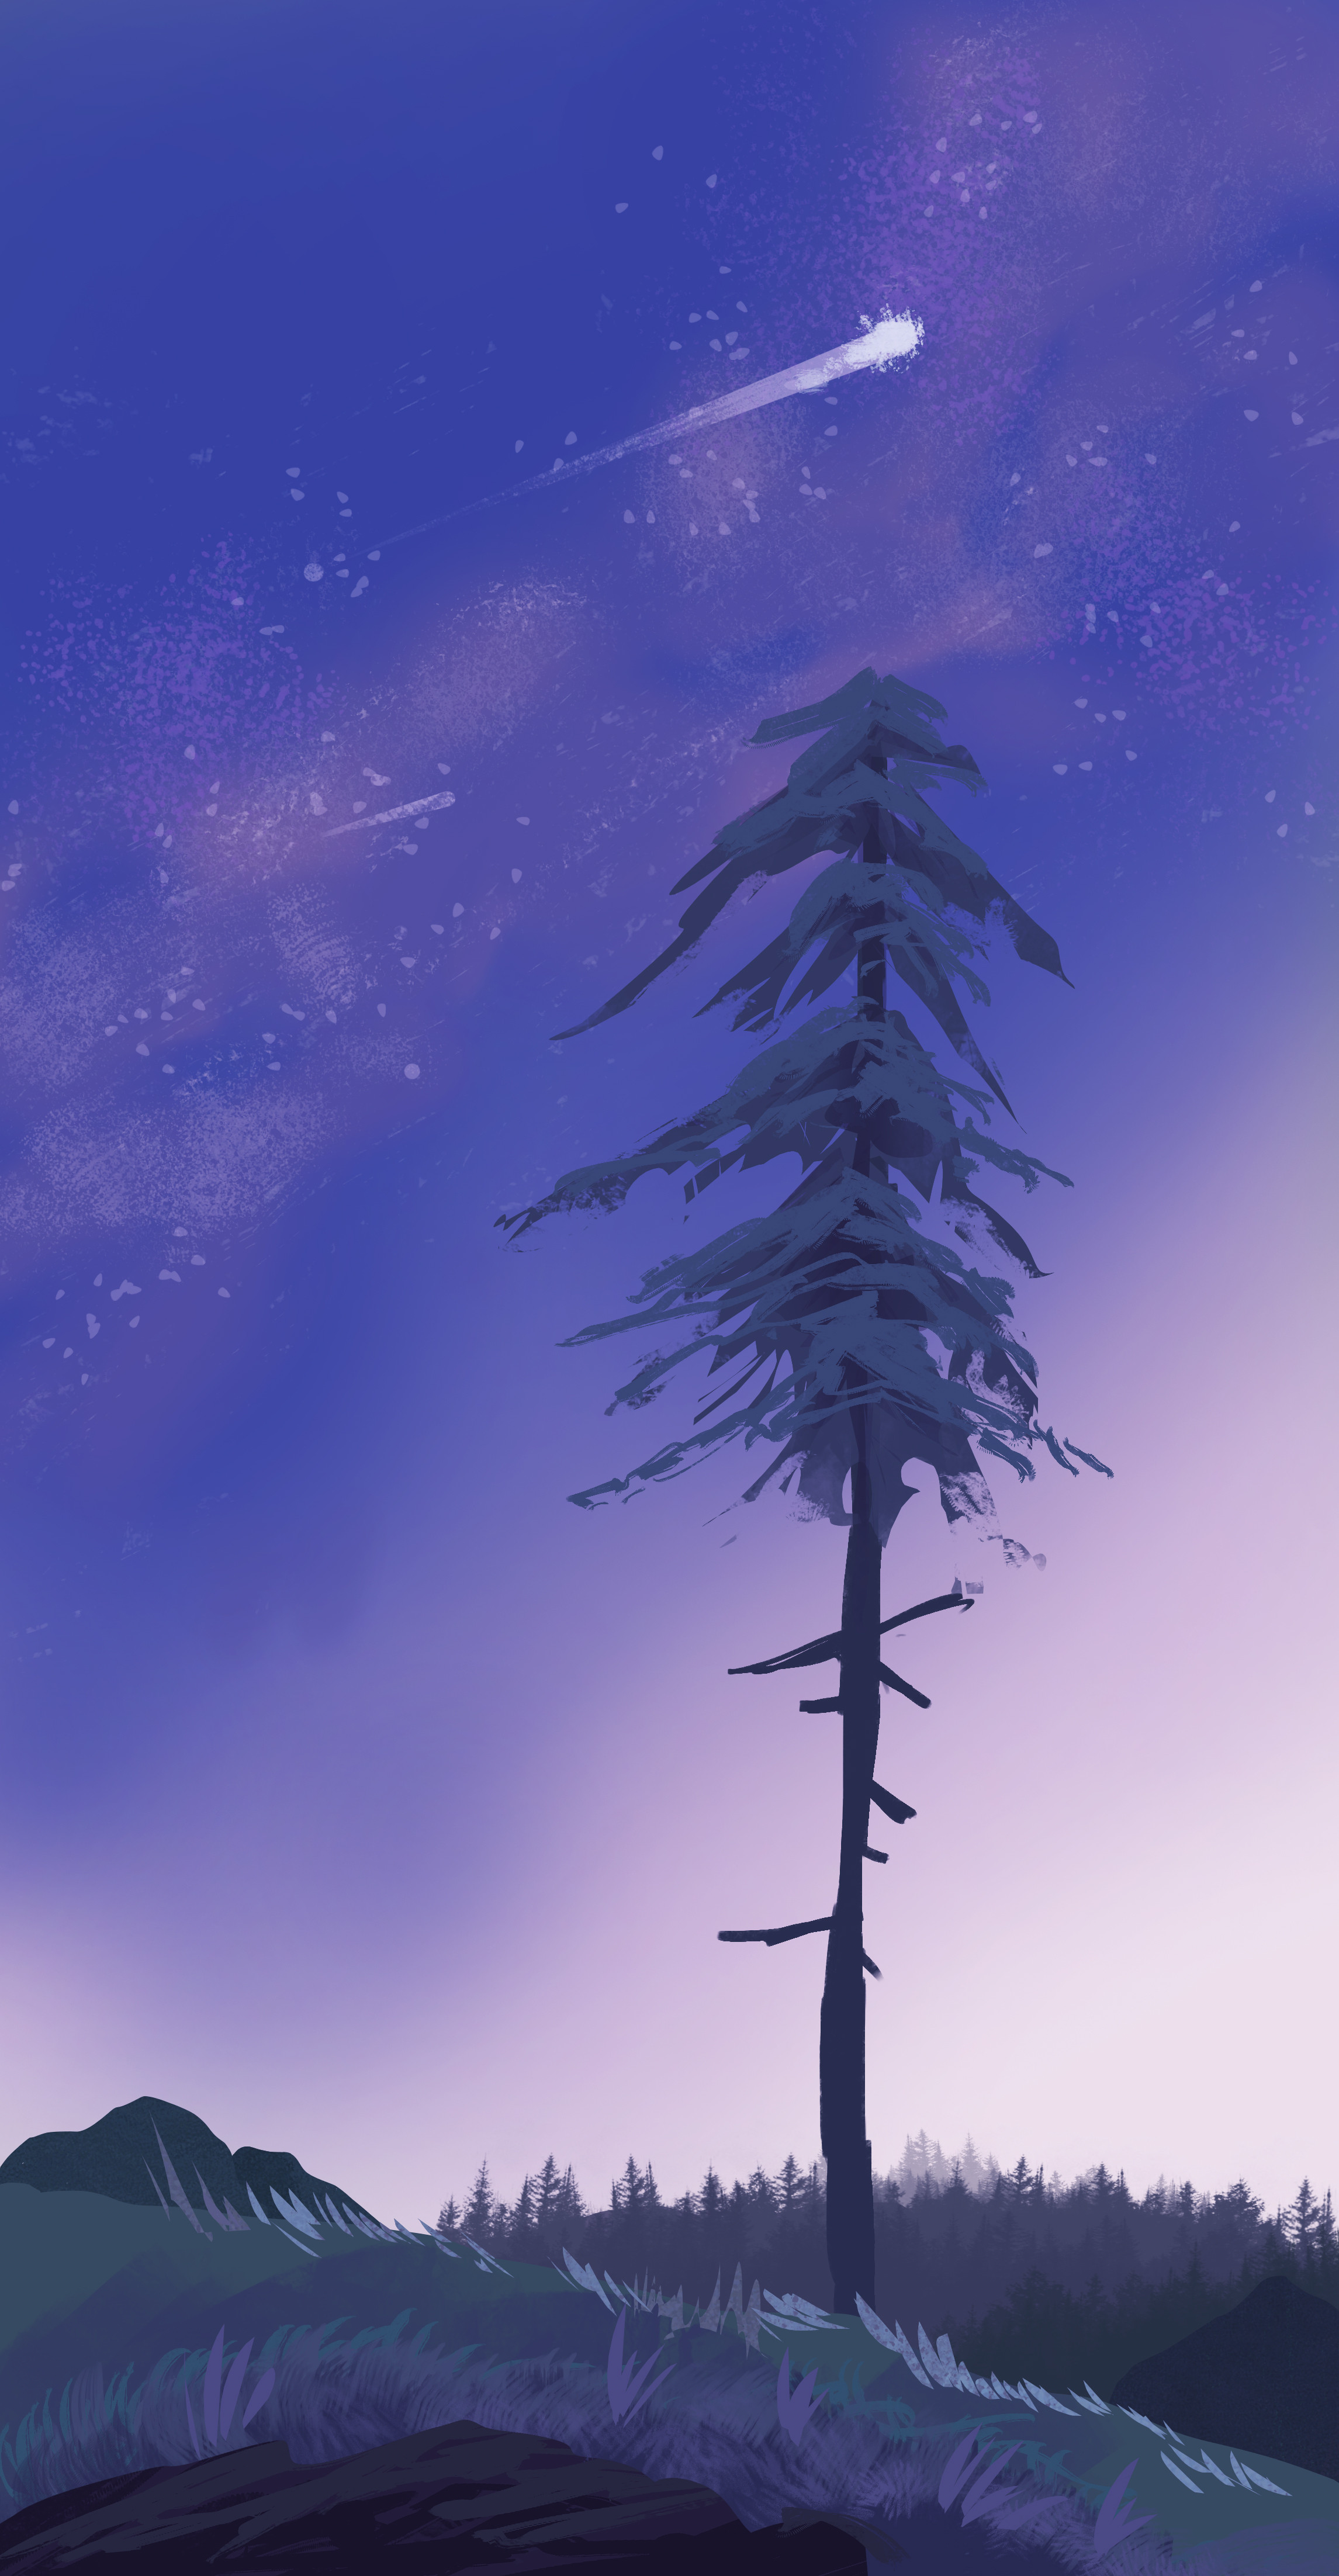 129362 download wallpaper Pine, Comet, Dusk, Twilight, Grass, Art screensavers and pictures for free